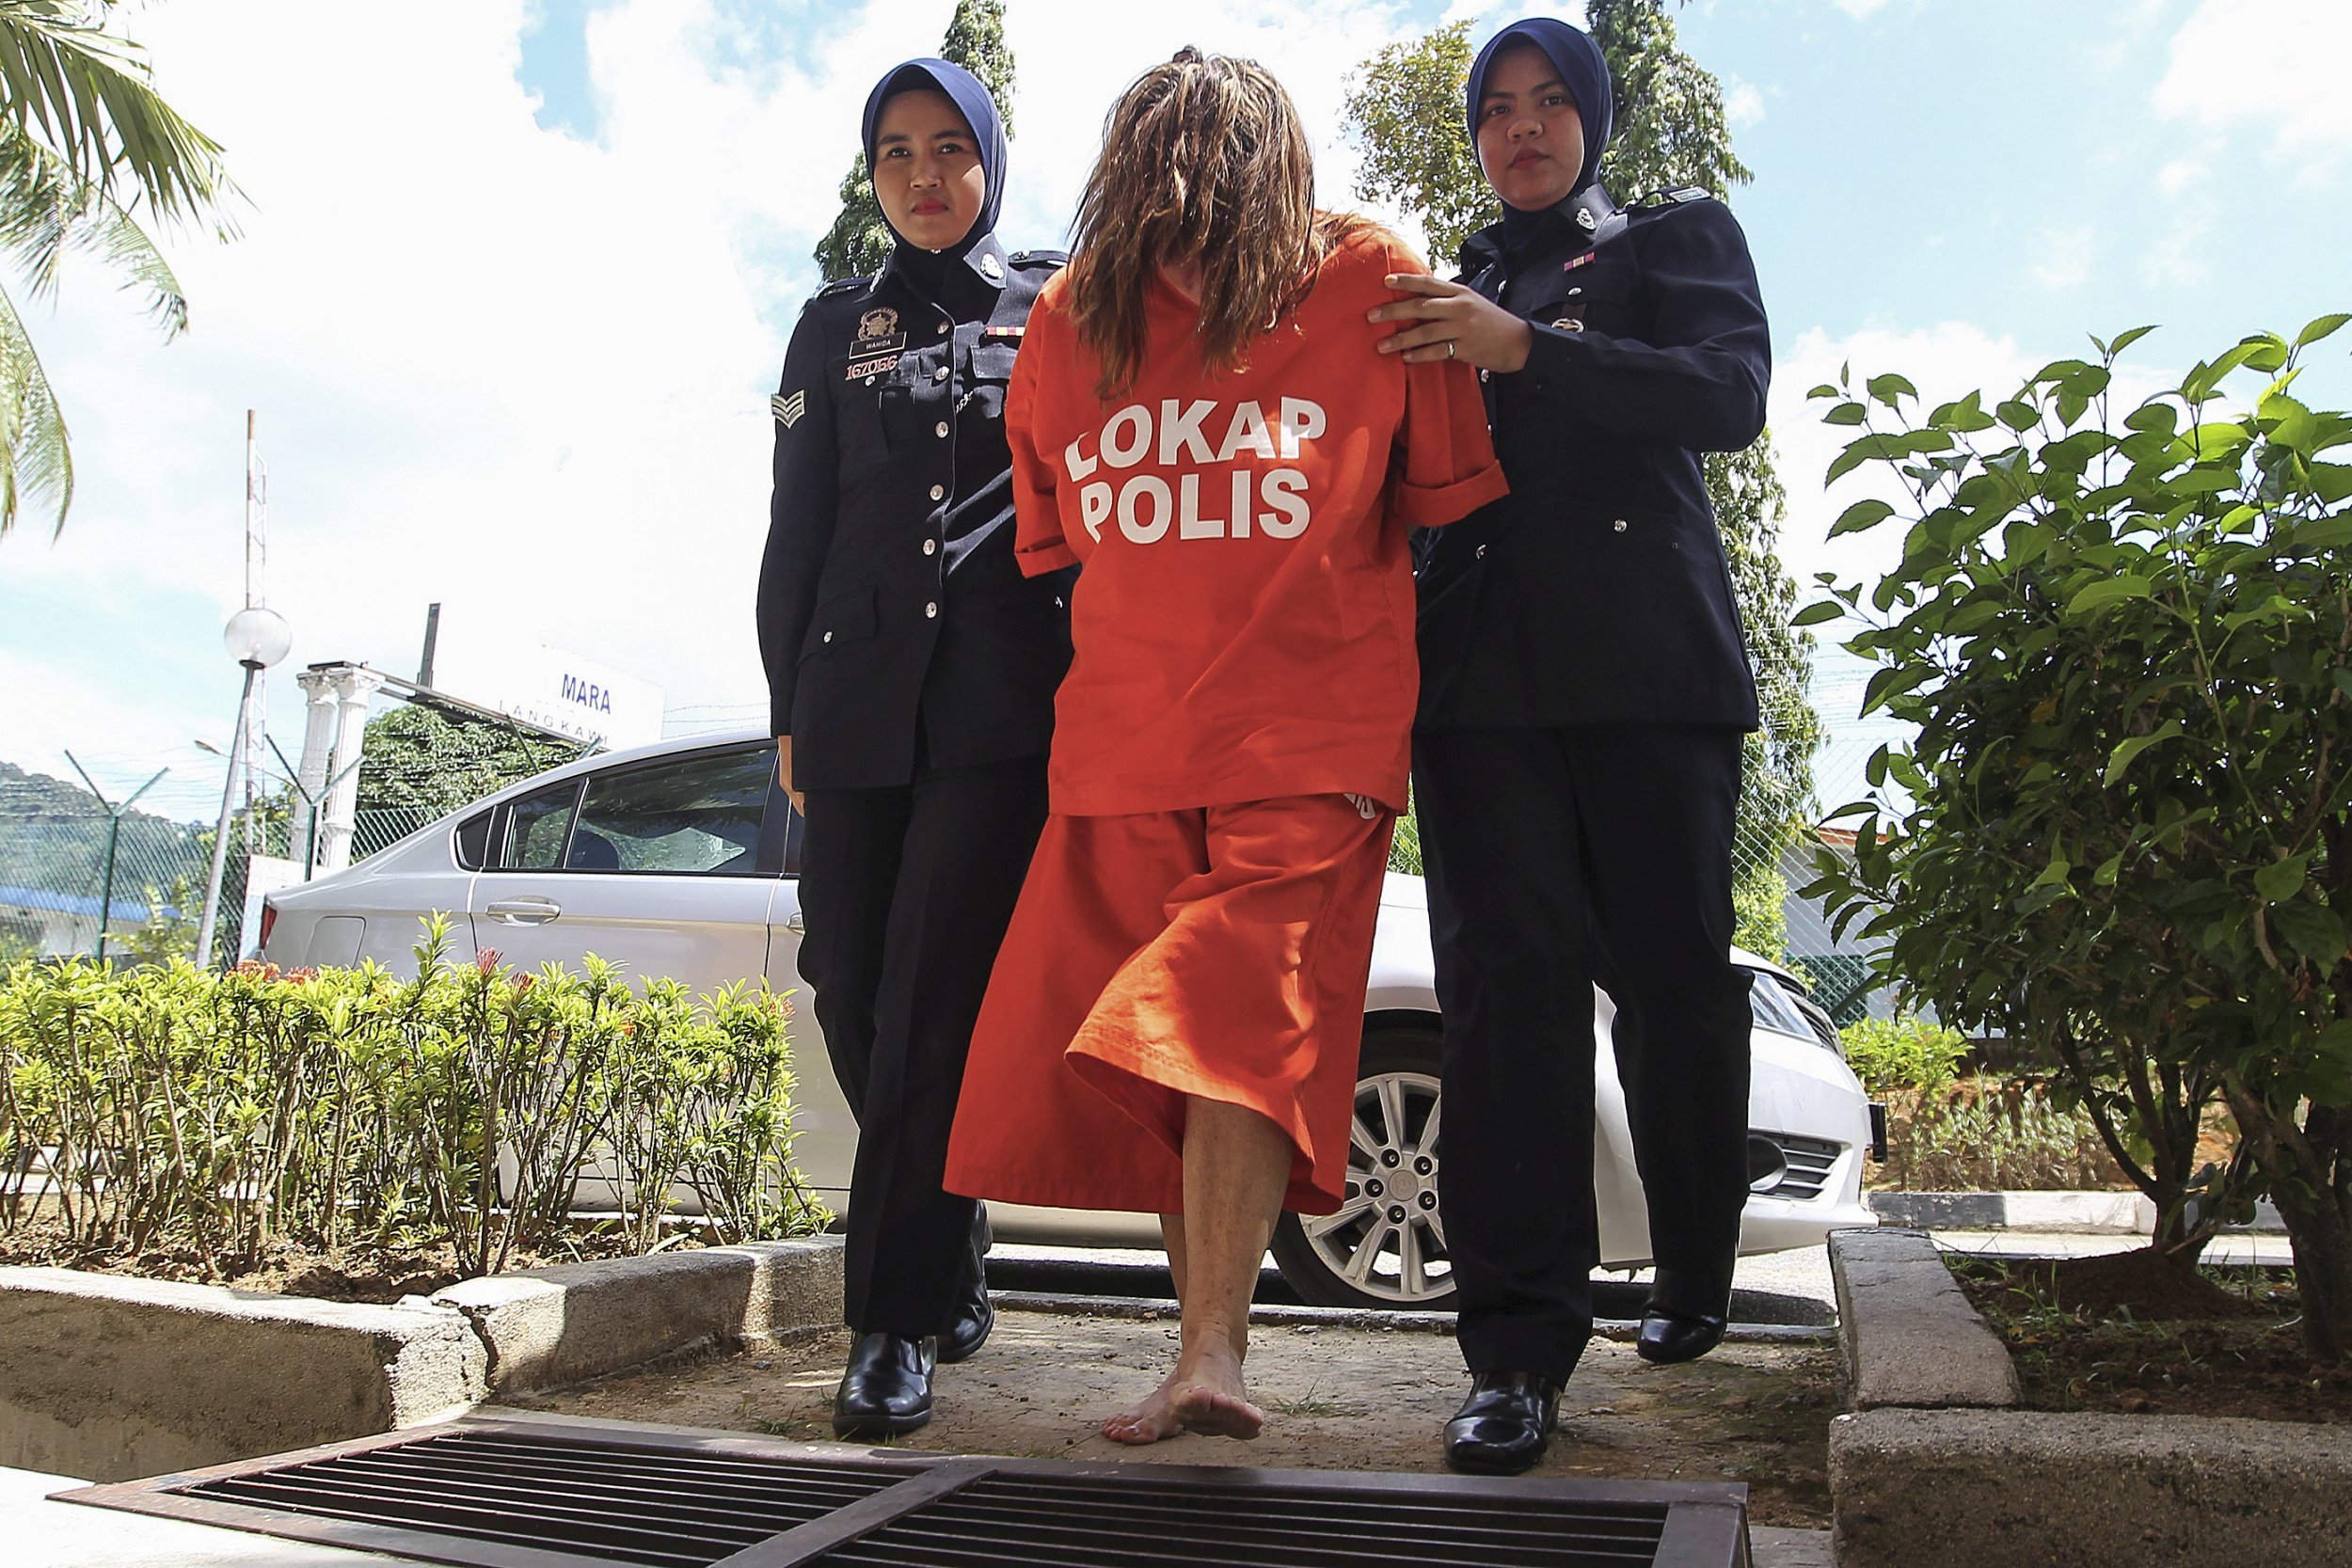 British woman faces death by hanging for murdering husband in Malaysia